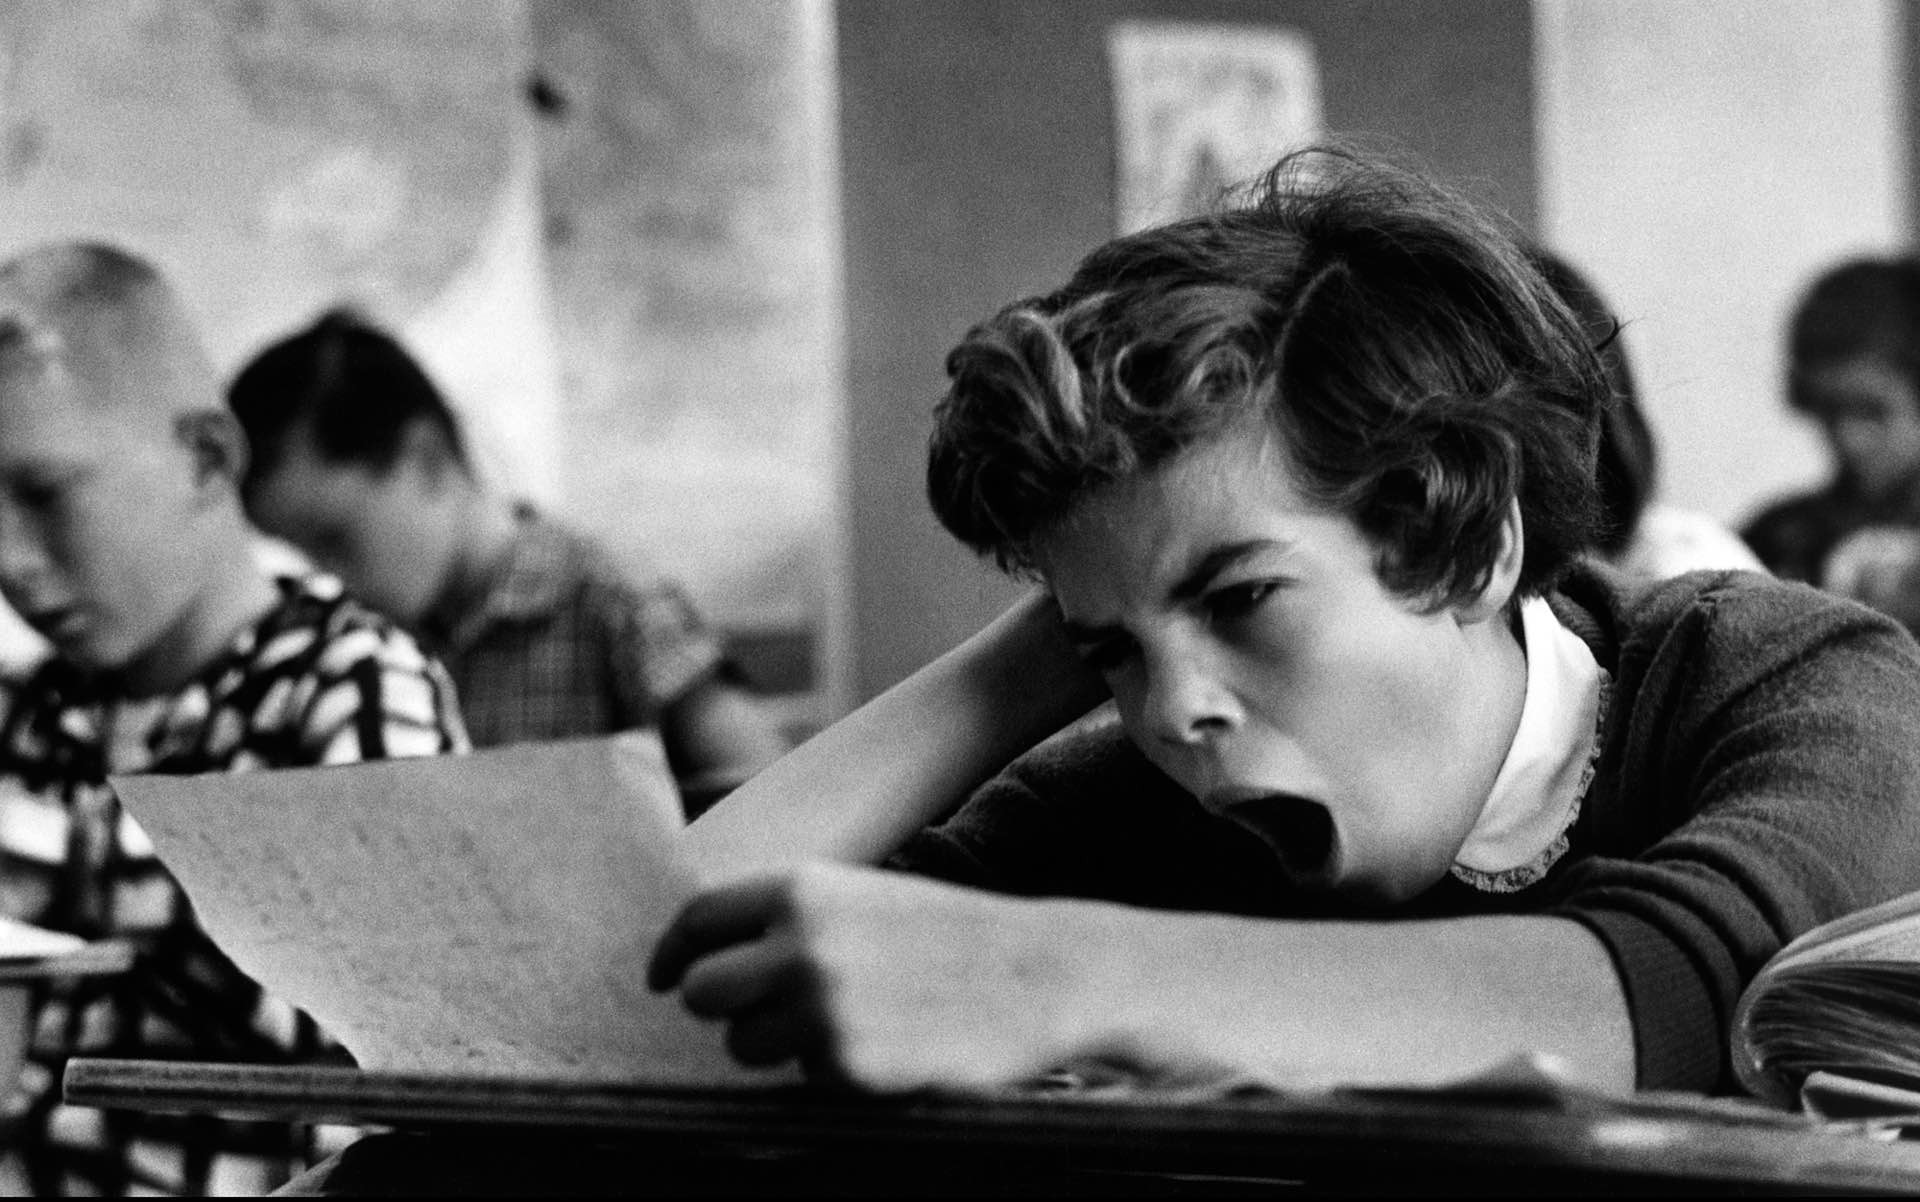 Photo: Wayne Miller / Magnum Photos (1955)